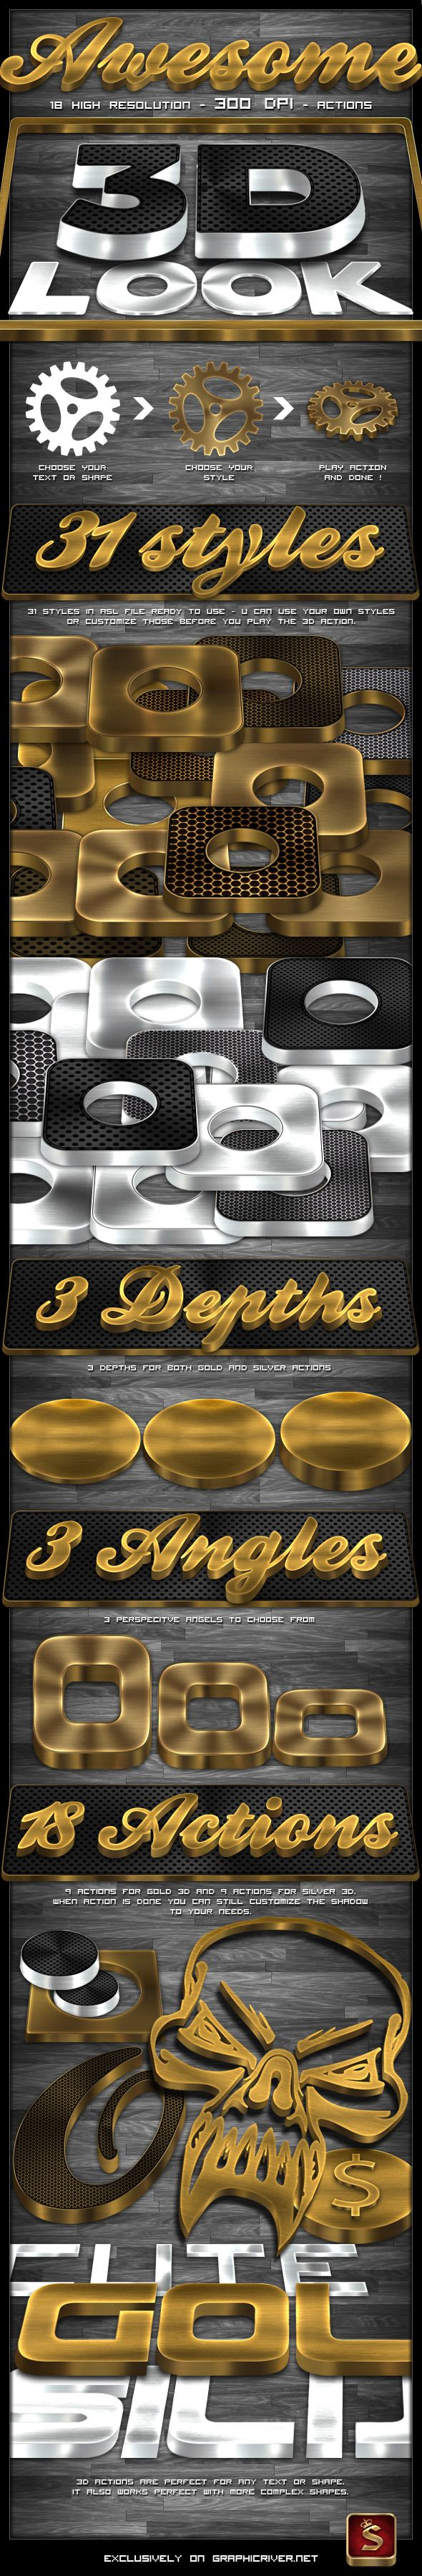 3D Gold And Silver Generator - Text Effects Actions | Cool Photoshop